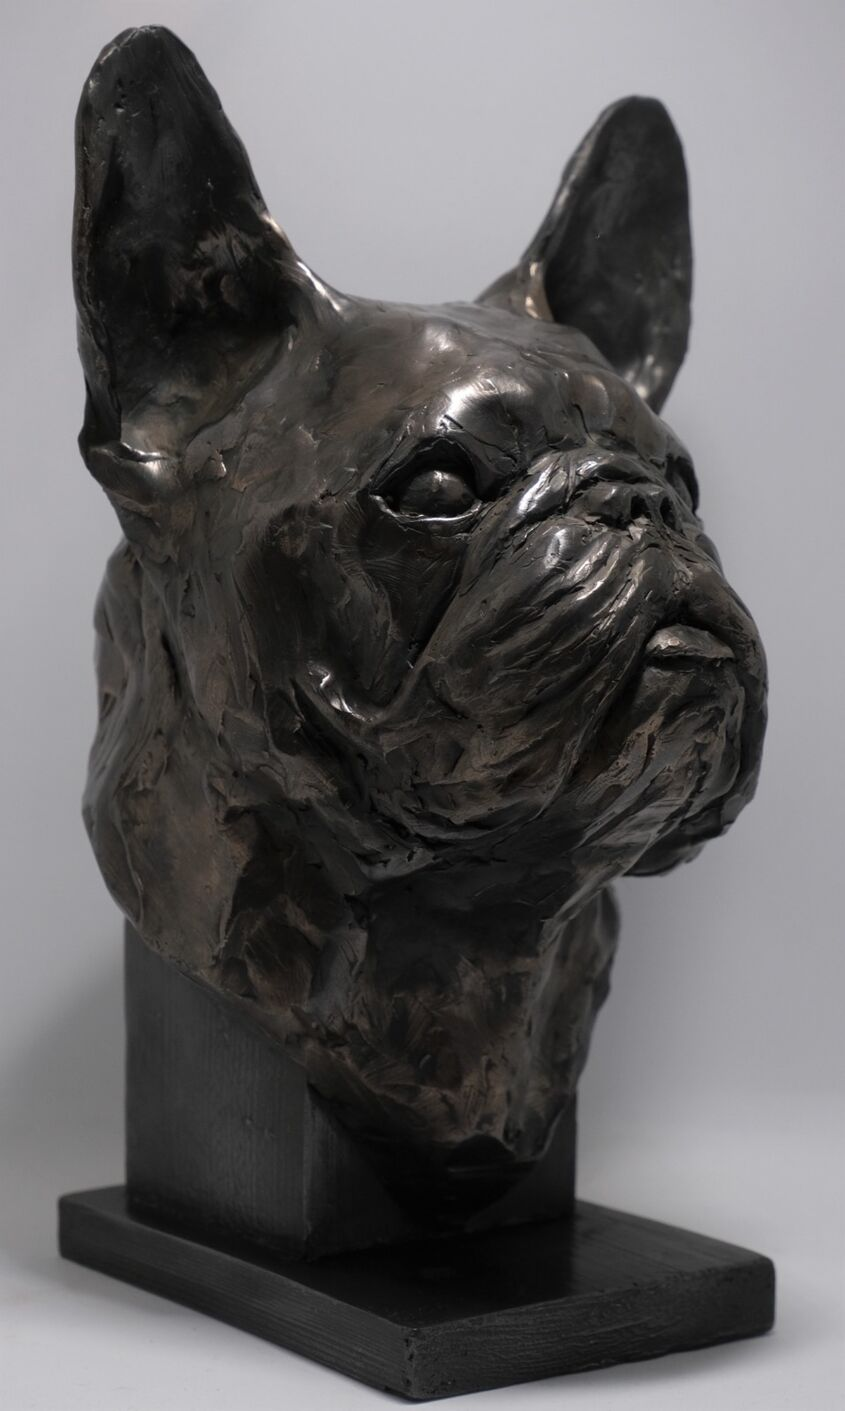 'Roy', cold cast iron and bronze. Commission piece NFS